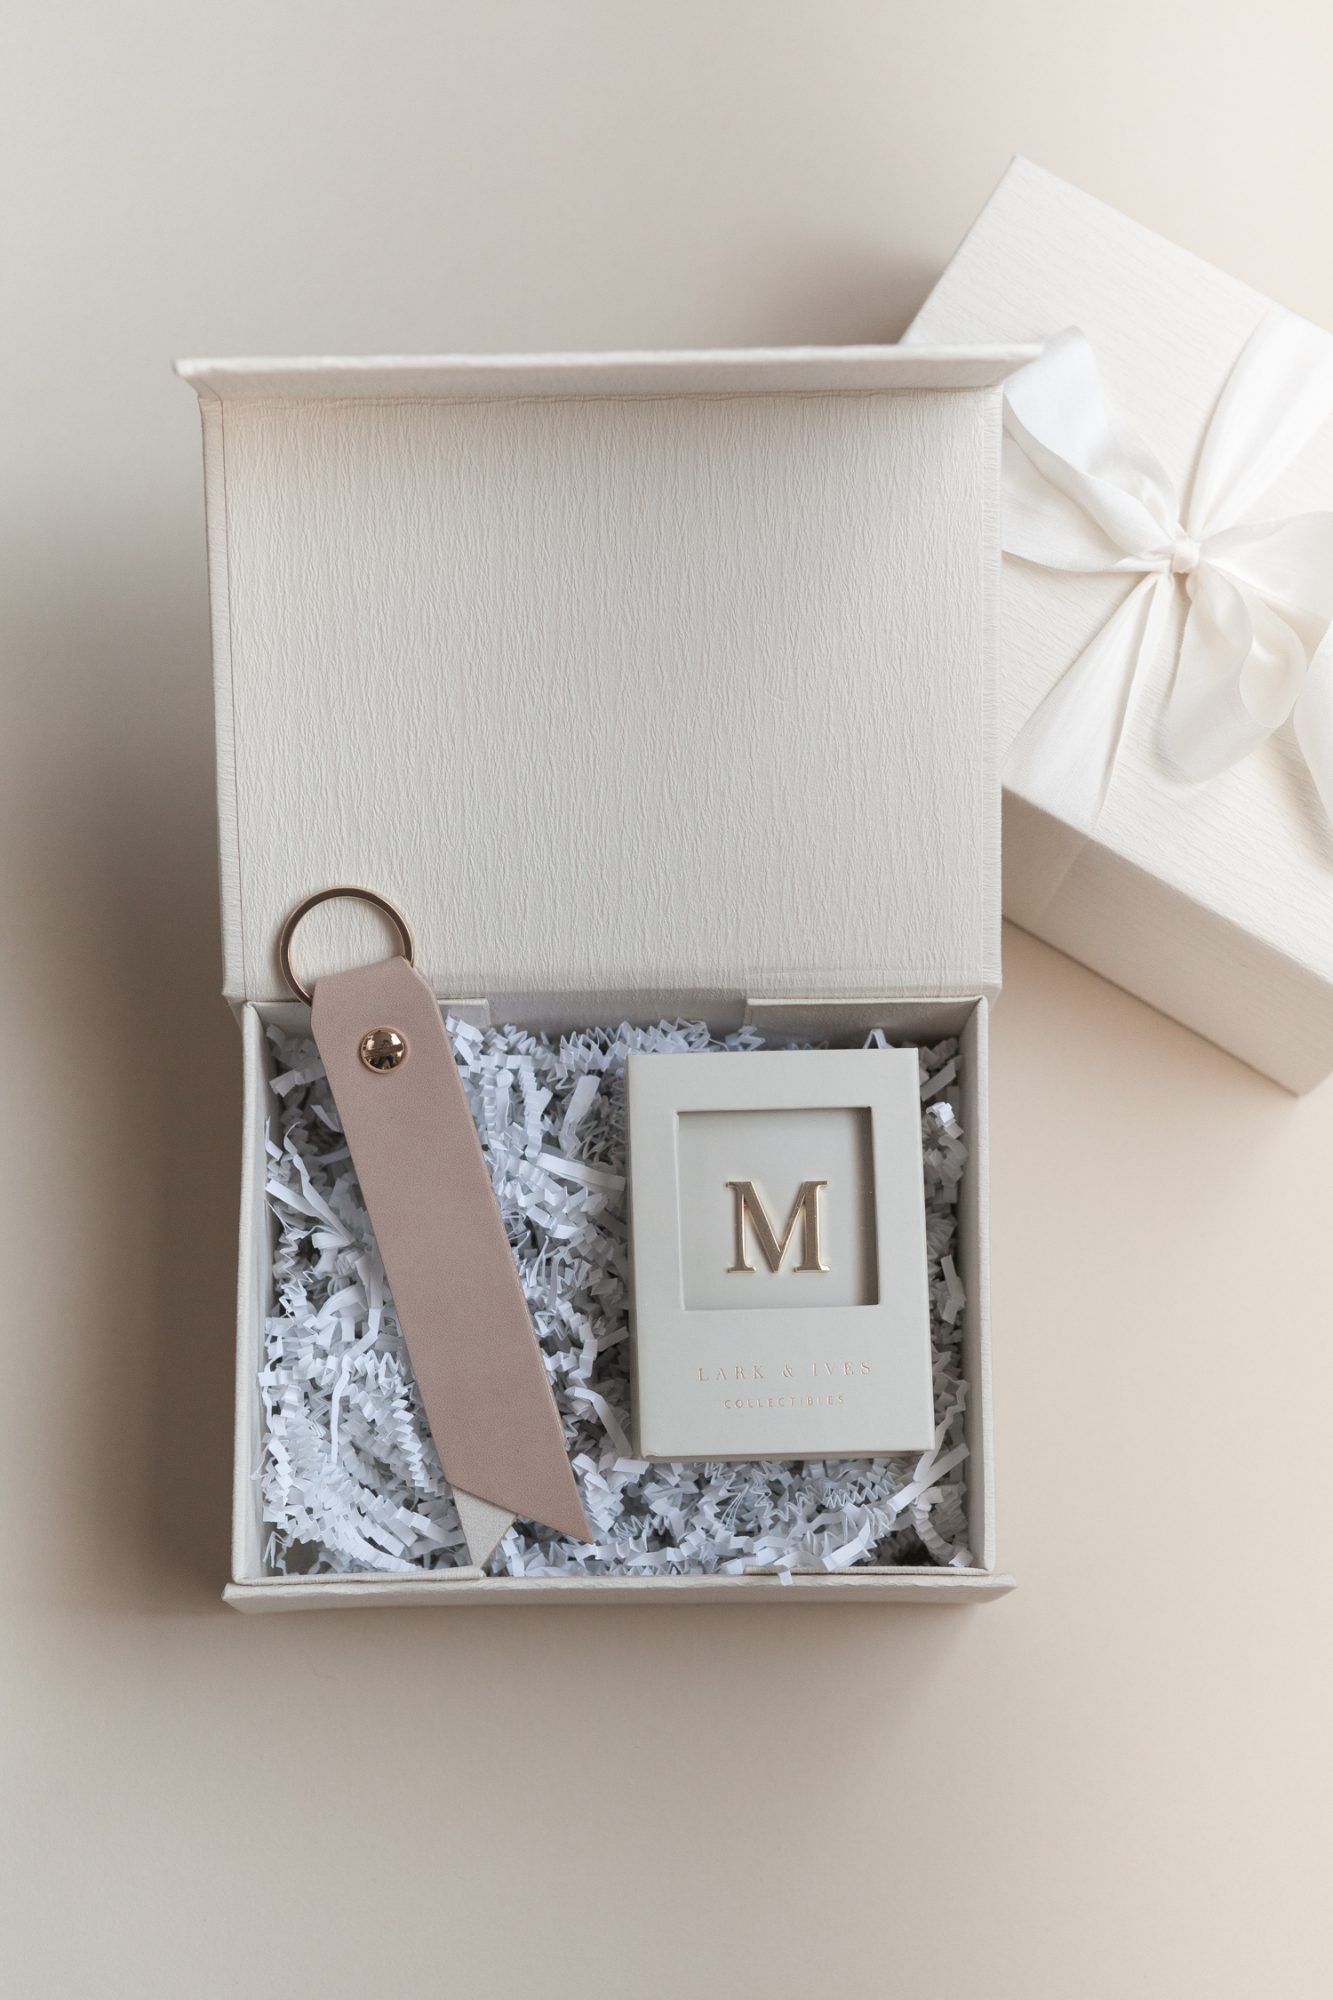 maid of honor gift guide lark and ives keyholder set